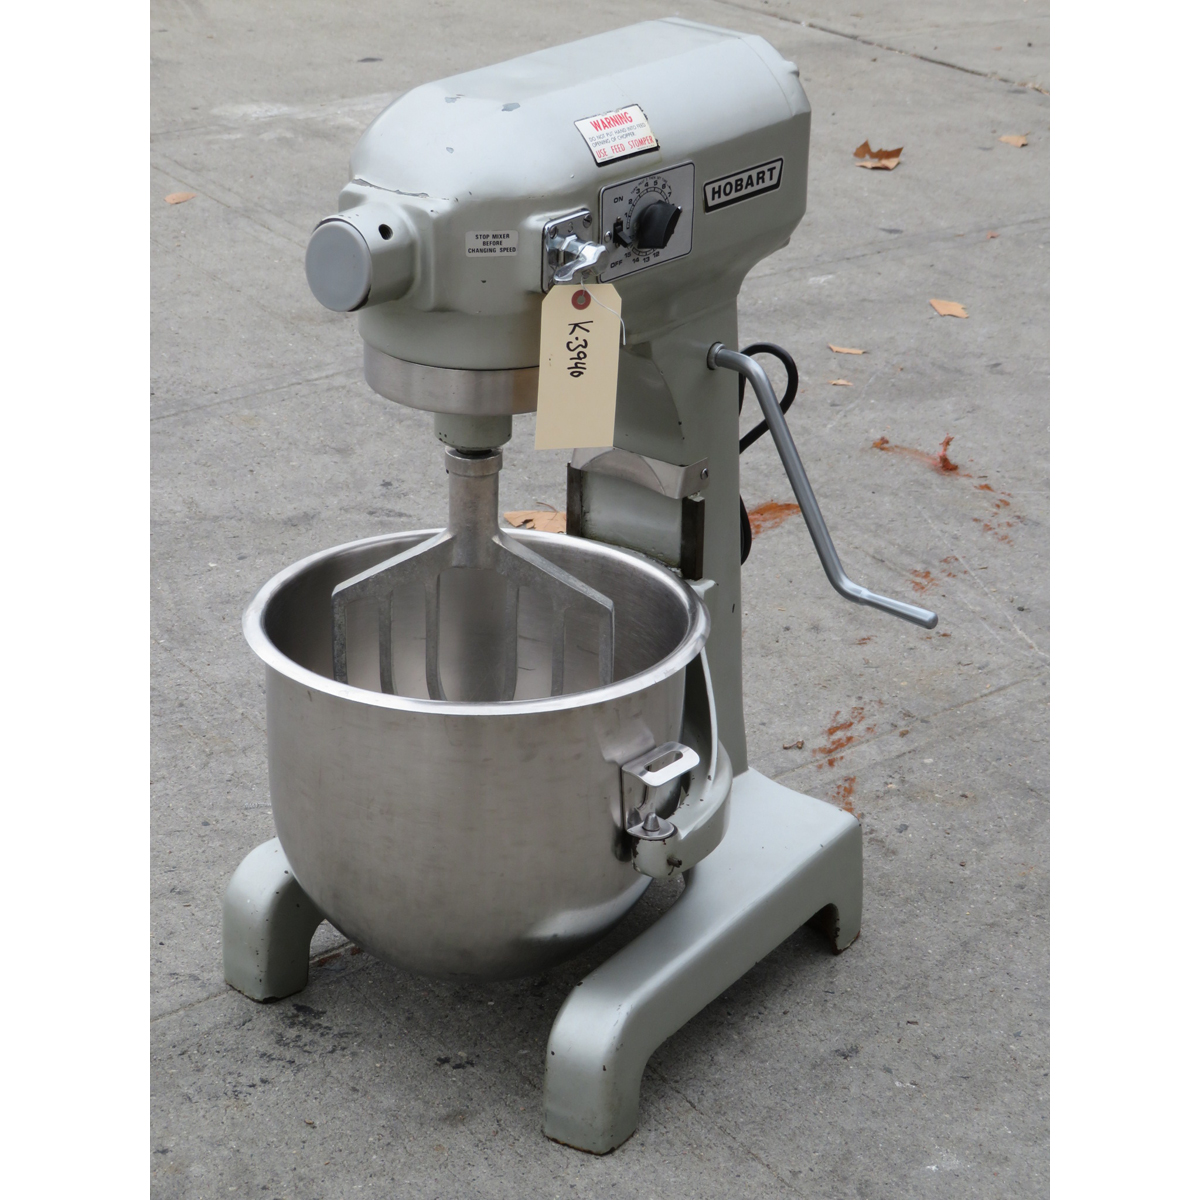 Hobart 20 Quart A200T Mixer with Timer, Used Excellent Condition on